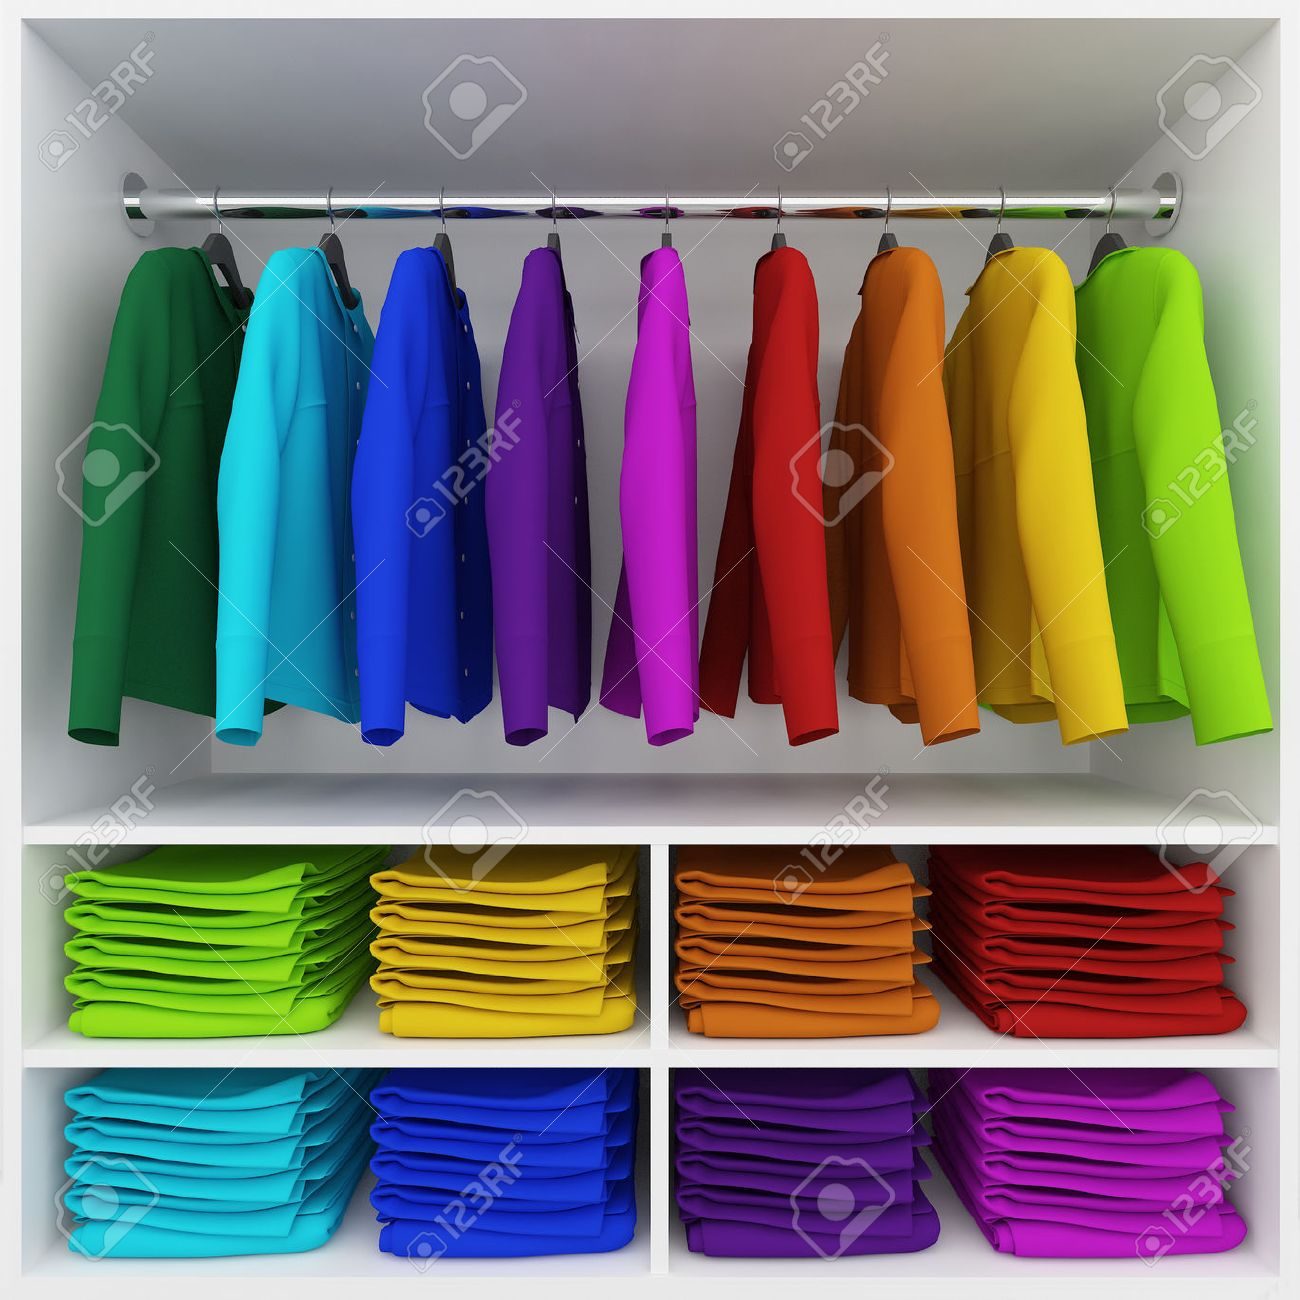 Colorful clothes hanging and stack of clothing in wardrobe - 36894419